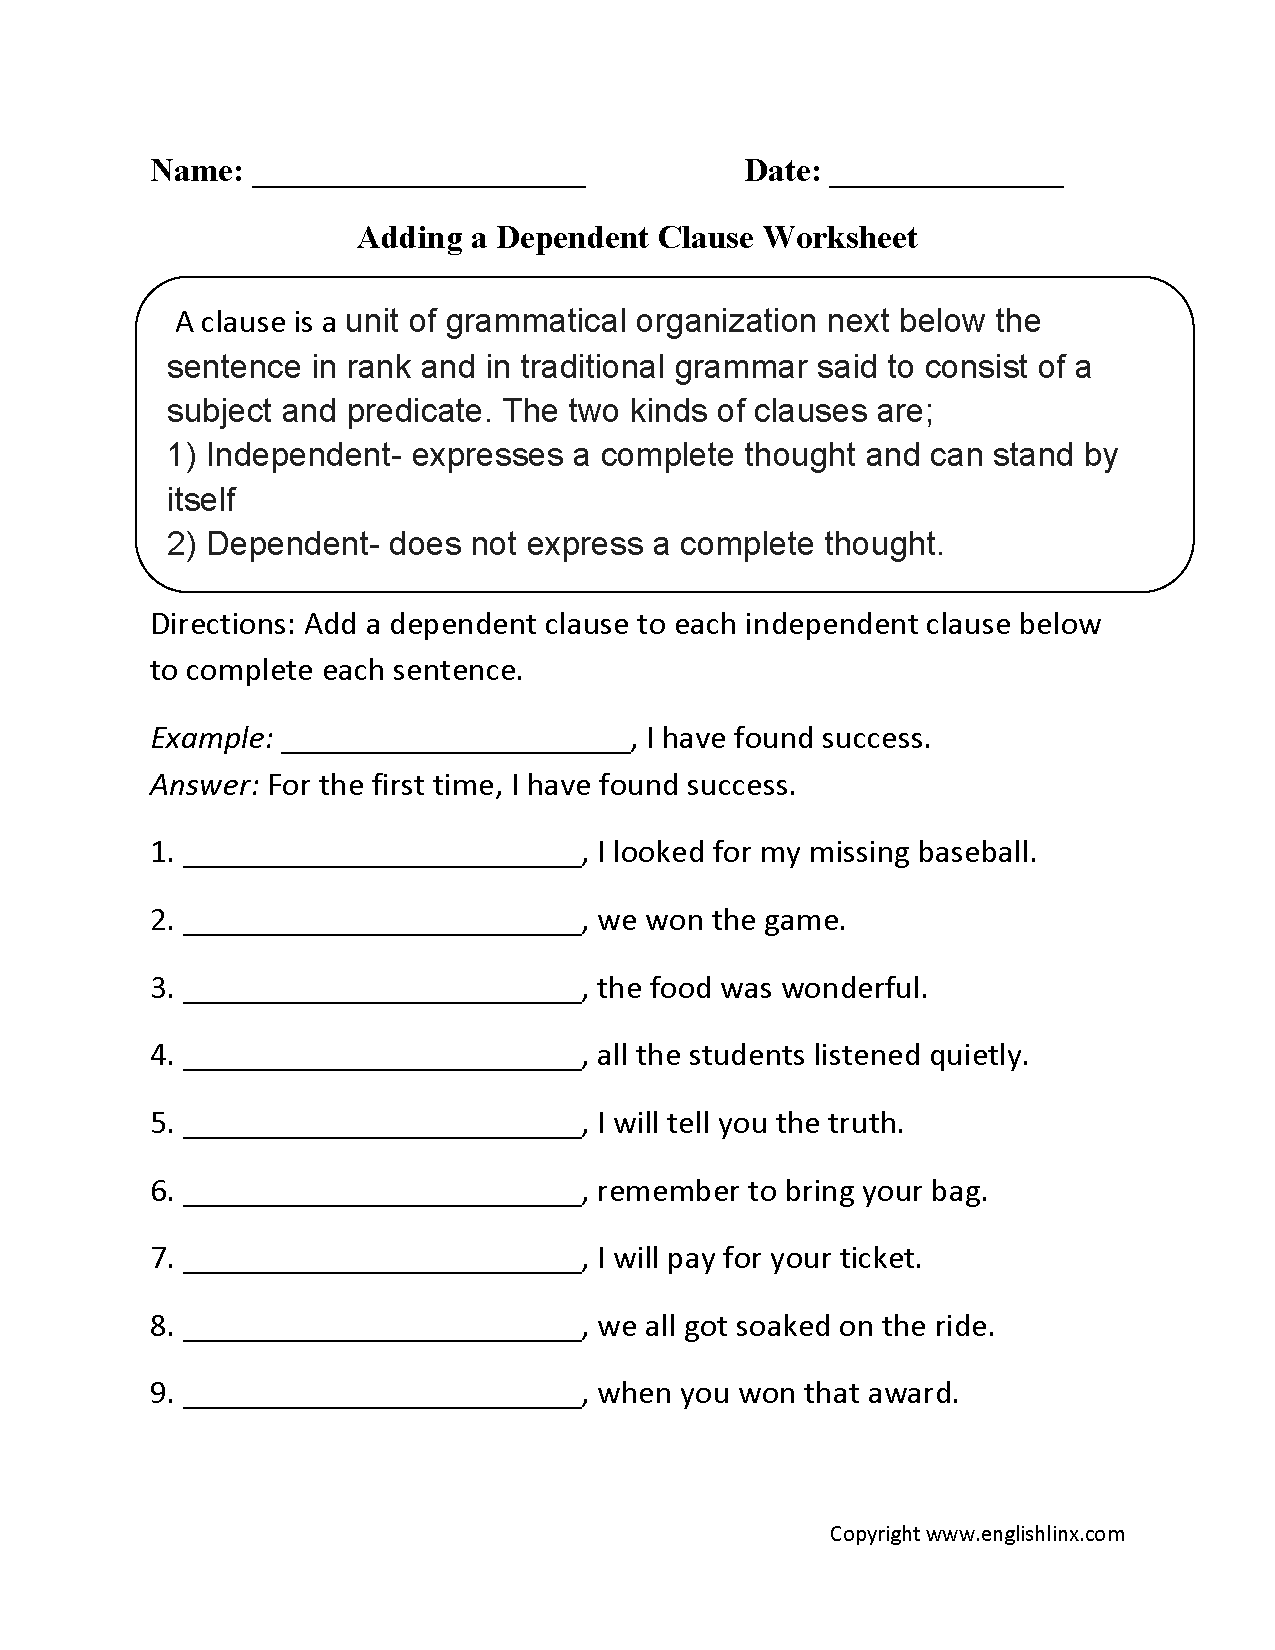 Worksheet Independent And Dependent Clauses Worksheet englishlinx com clauses worksheets adding a dependent clause worksheet